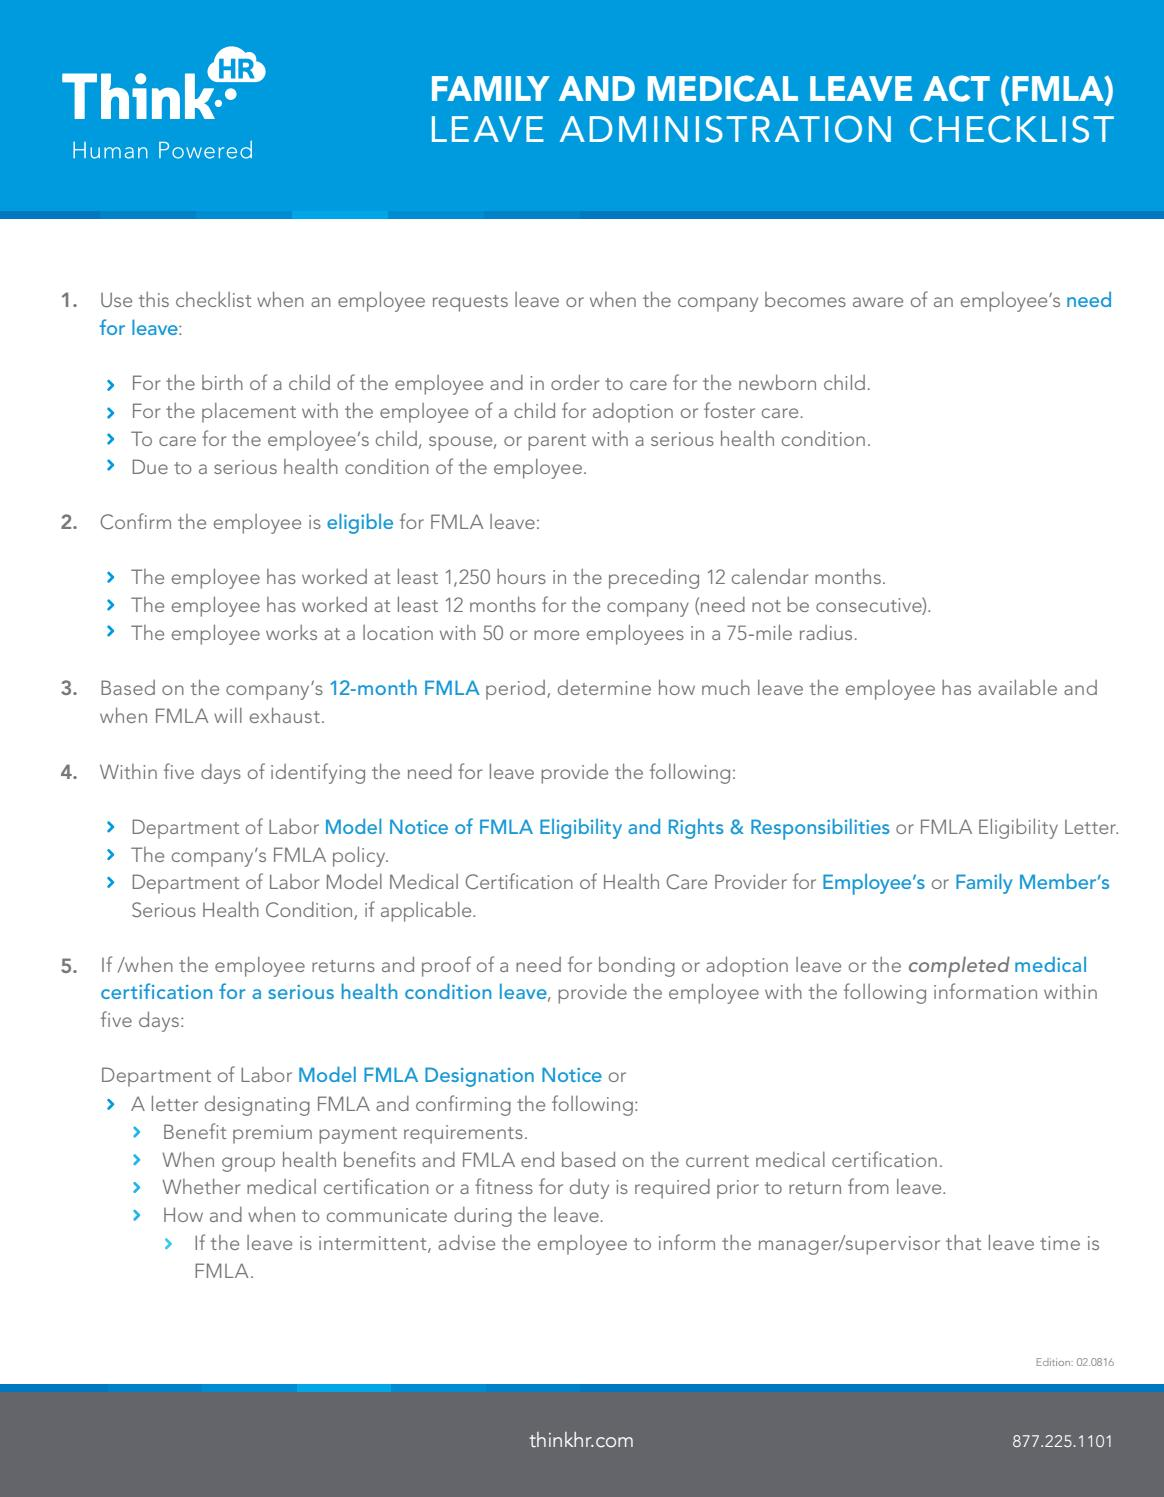 FMLA Leave Administration Checklist by Chris Estephan - issuu